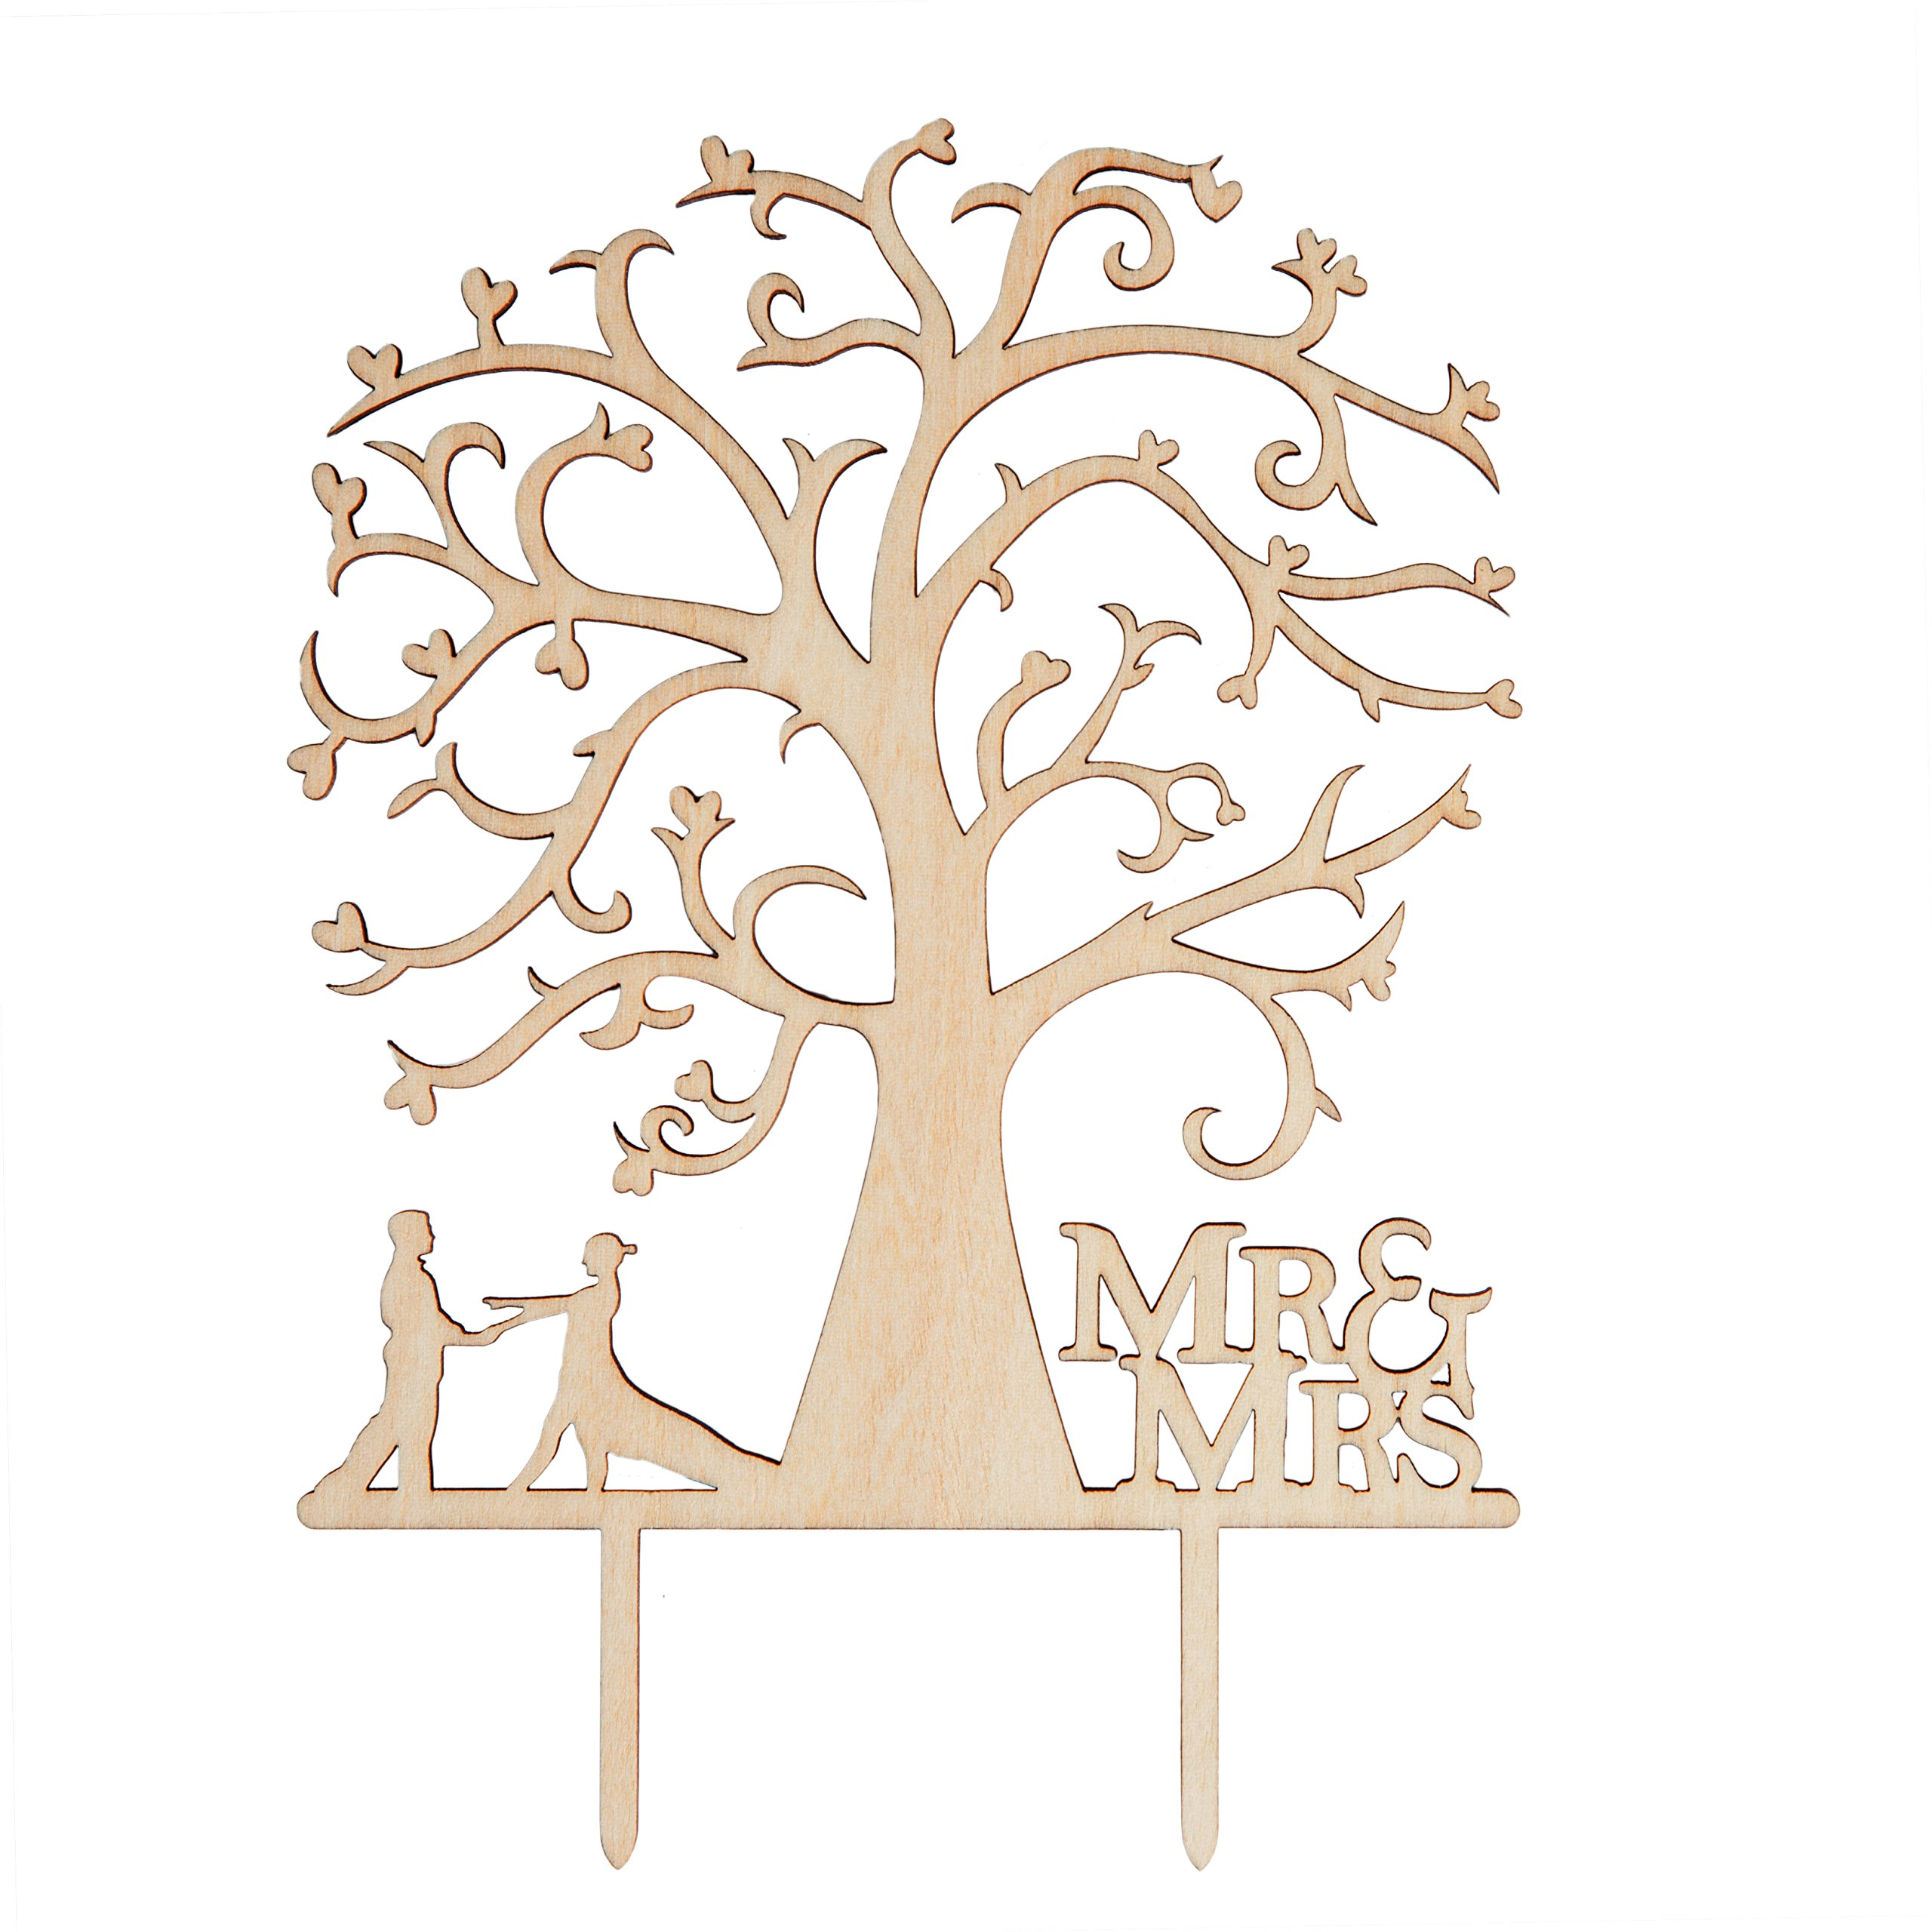 LOVENJOY Gift Box Pack Mr and Mrs Dancing Bride and Groom Tree Silhouette Rustic Wedding Cake Toppers Wood (5-inch) by LOVENJOY (Image #6)